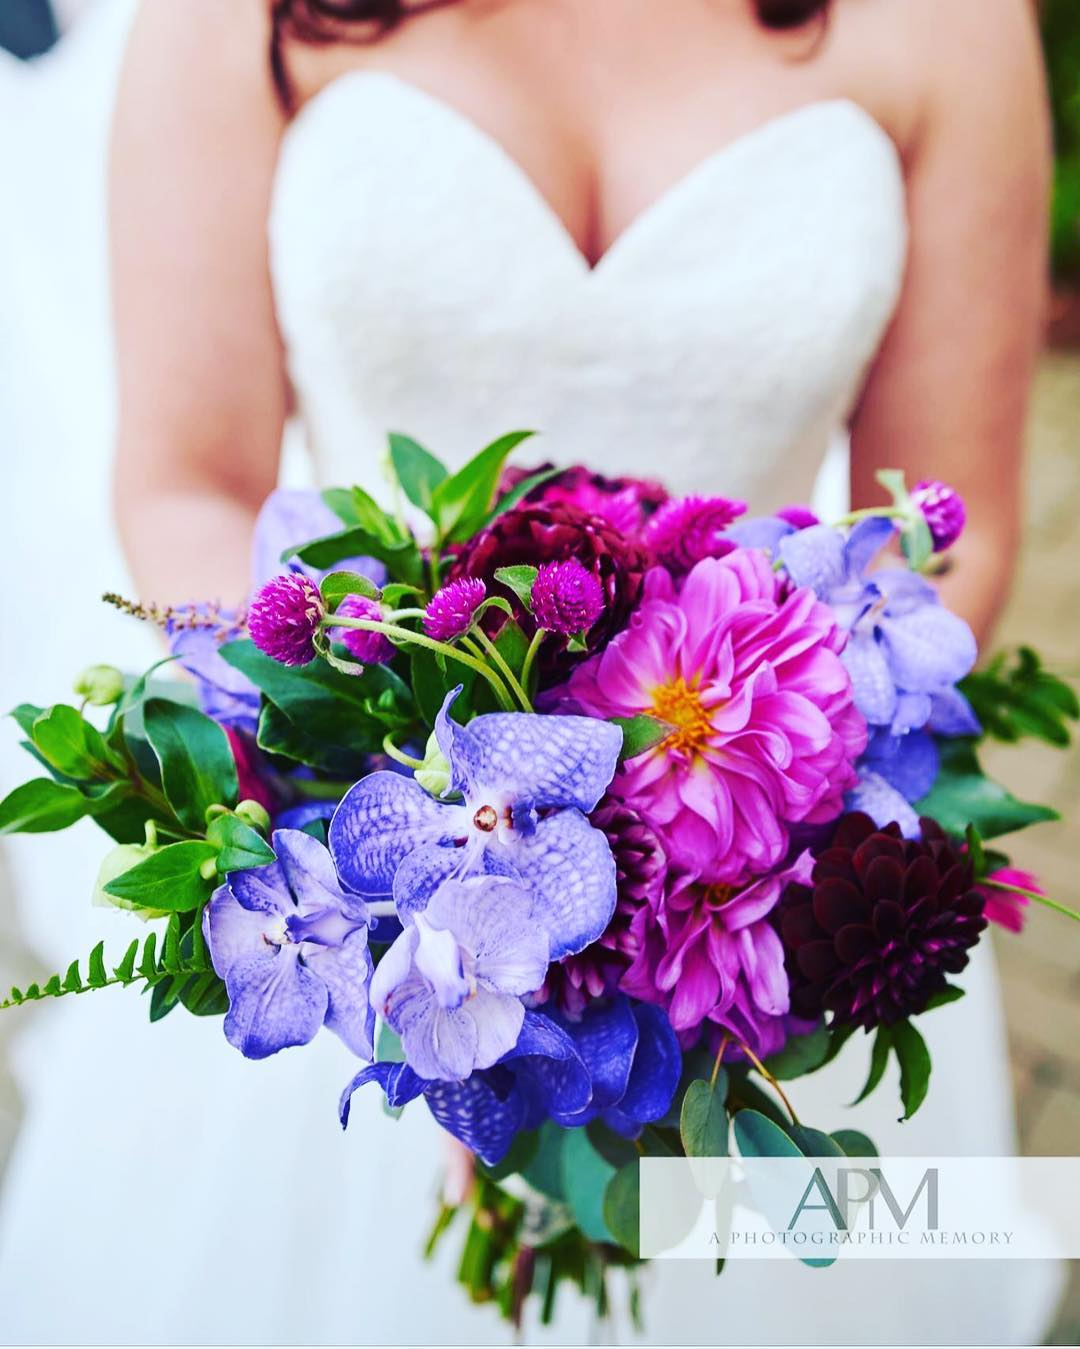 {pretty} photo | @apmnhphoto . . #bouquet #bridebling #accessory #prettyflowers #brideflowers #colorful #purple #blue #magenta #orchids #dahlias #gomphrena #helleborus #lovely #lotusfloraldesigns #weddingflorist